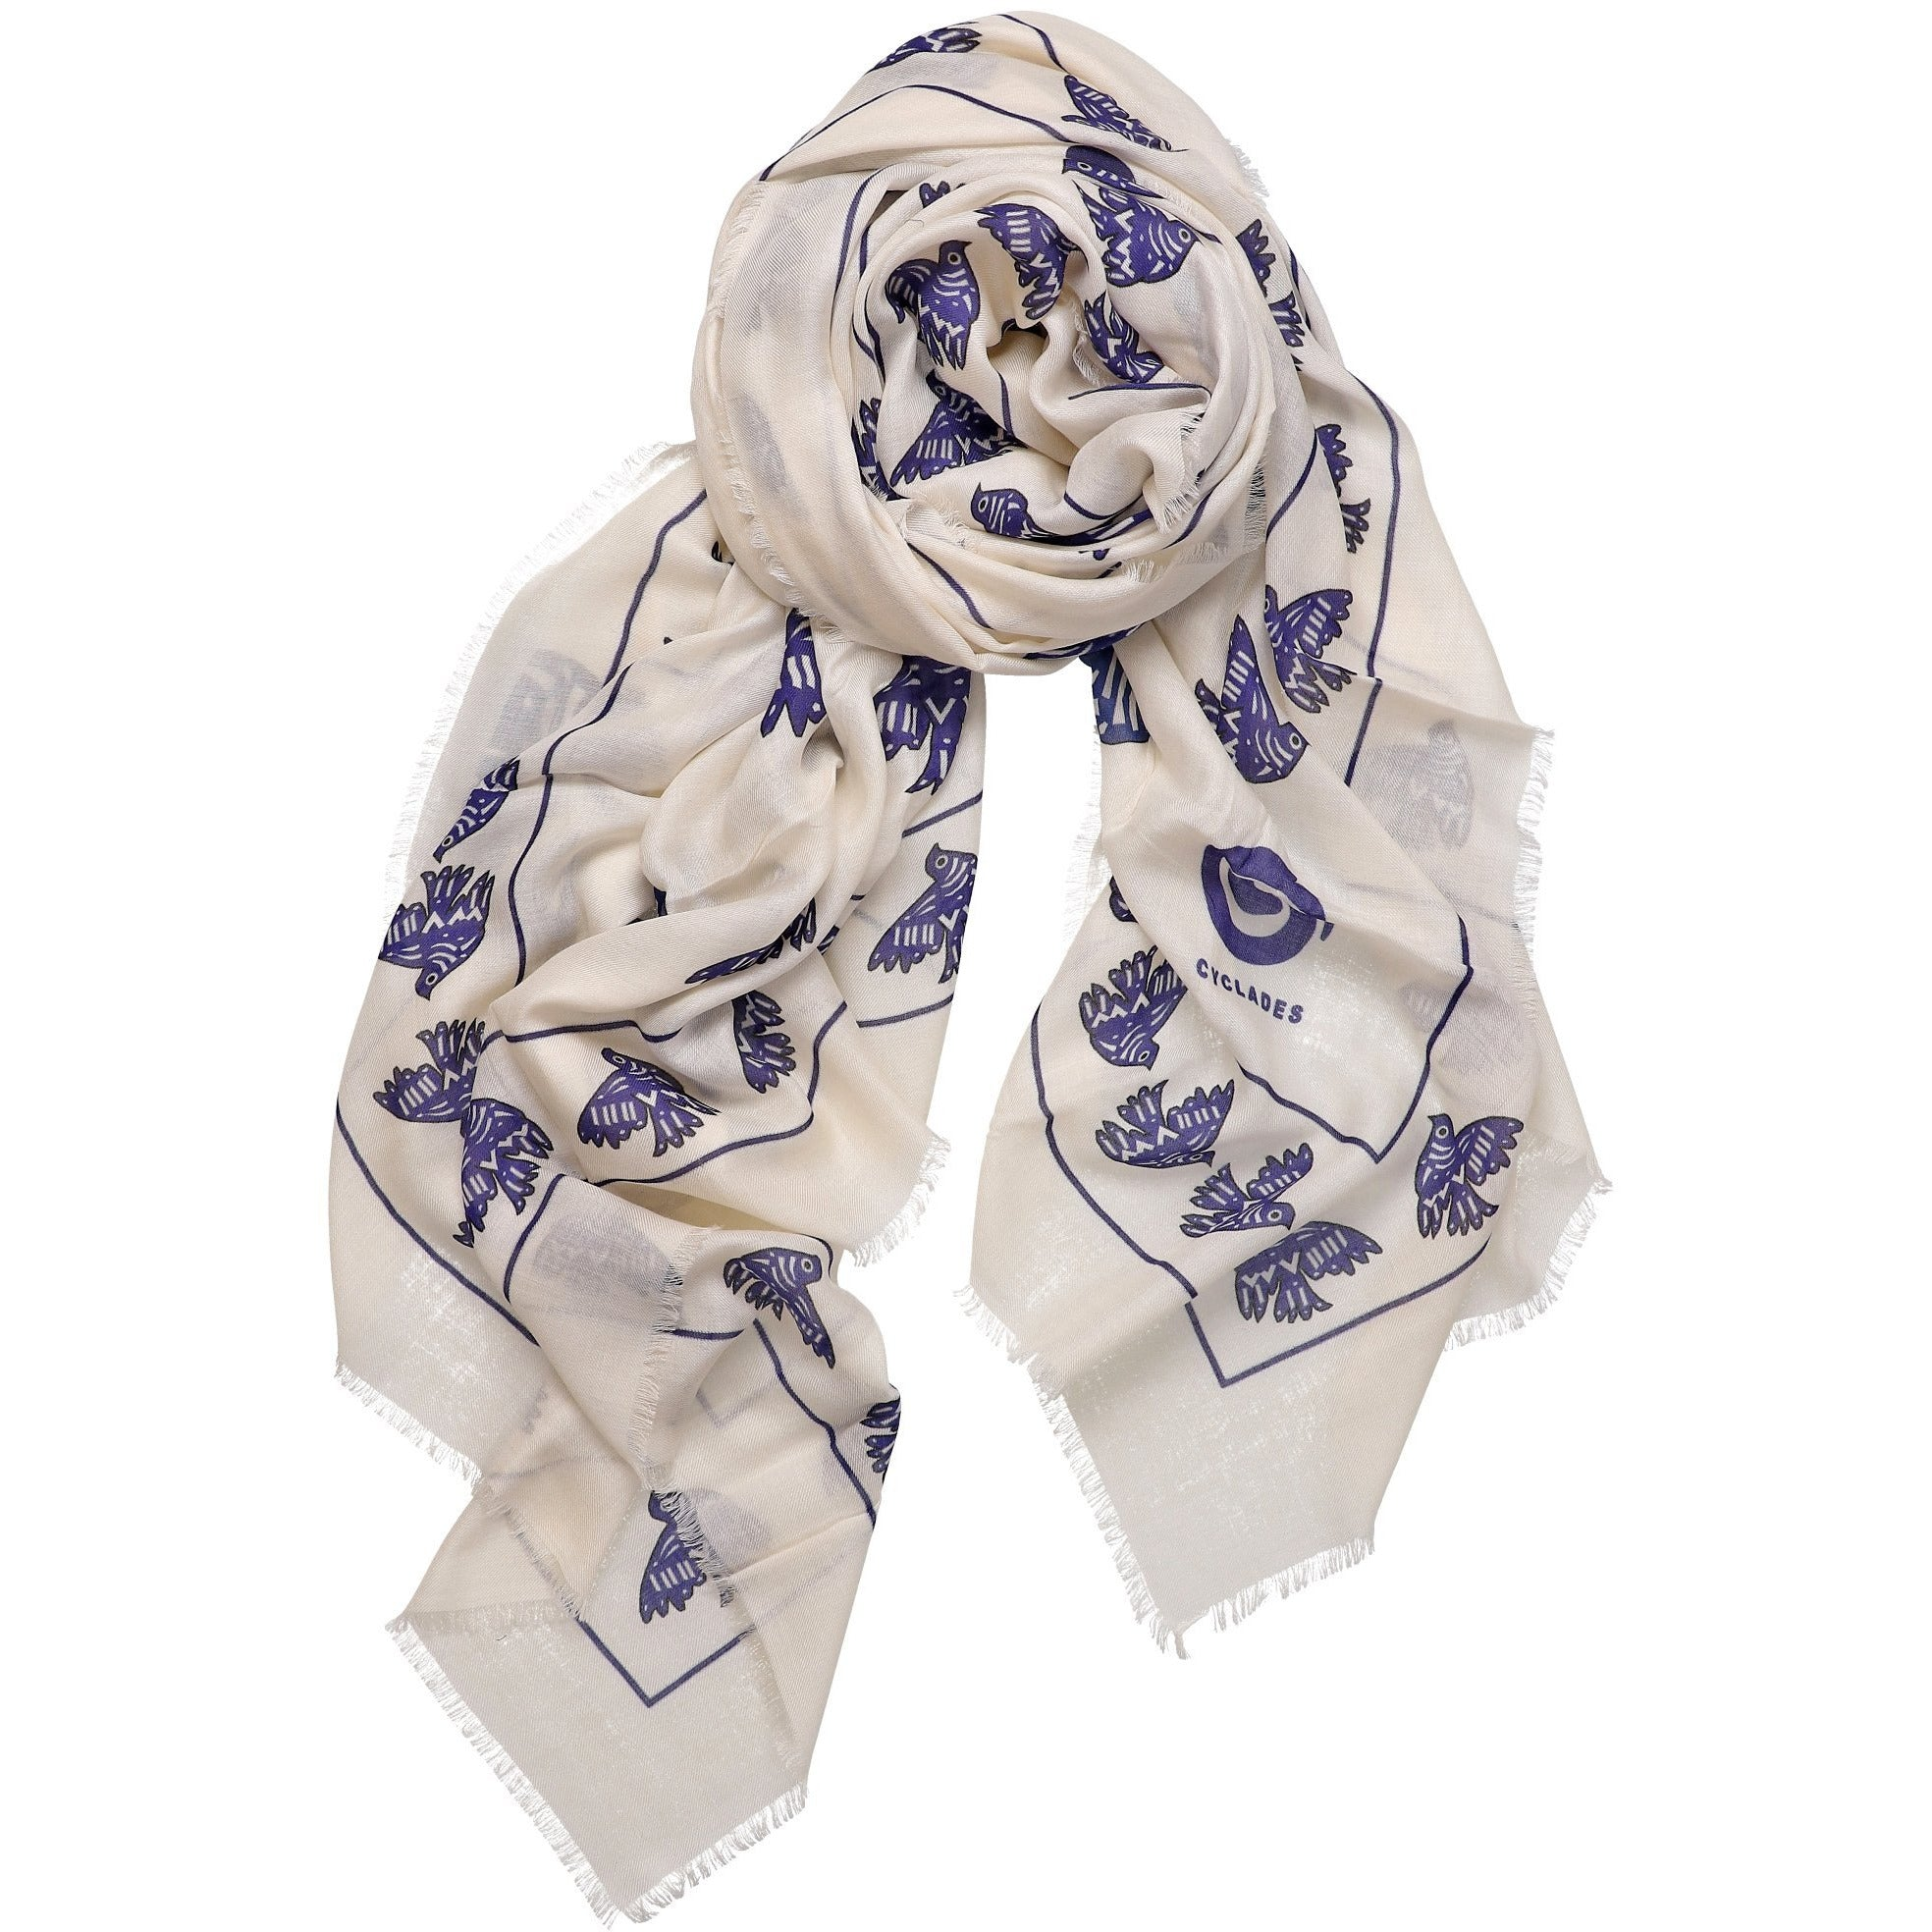 Cyclades Cashmere Blend Scarf Friendship in White - natoorio